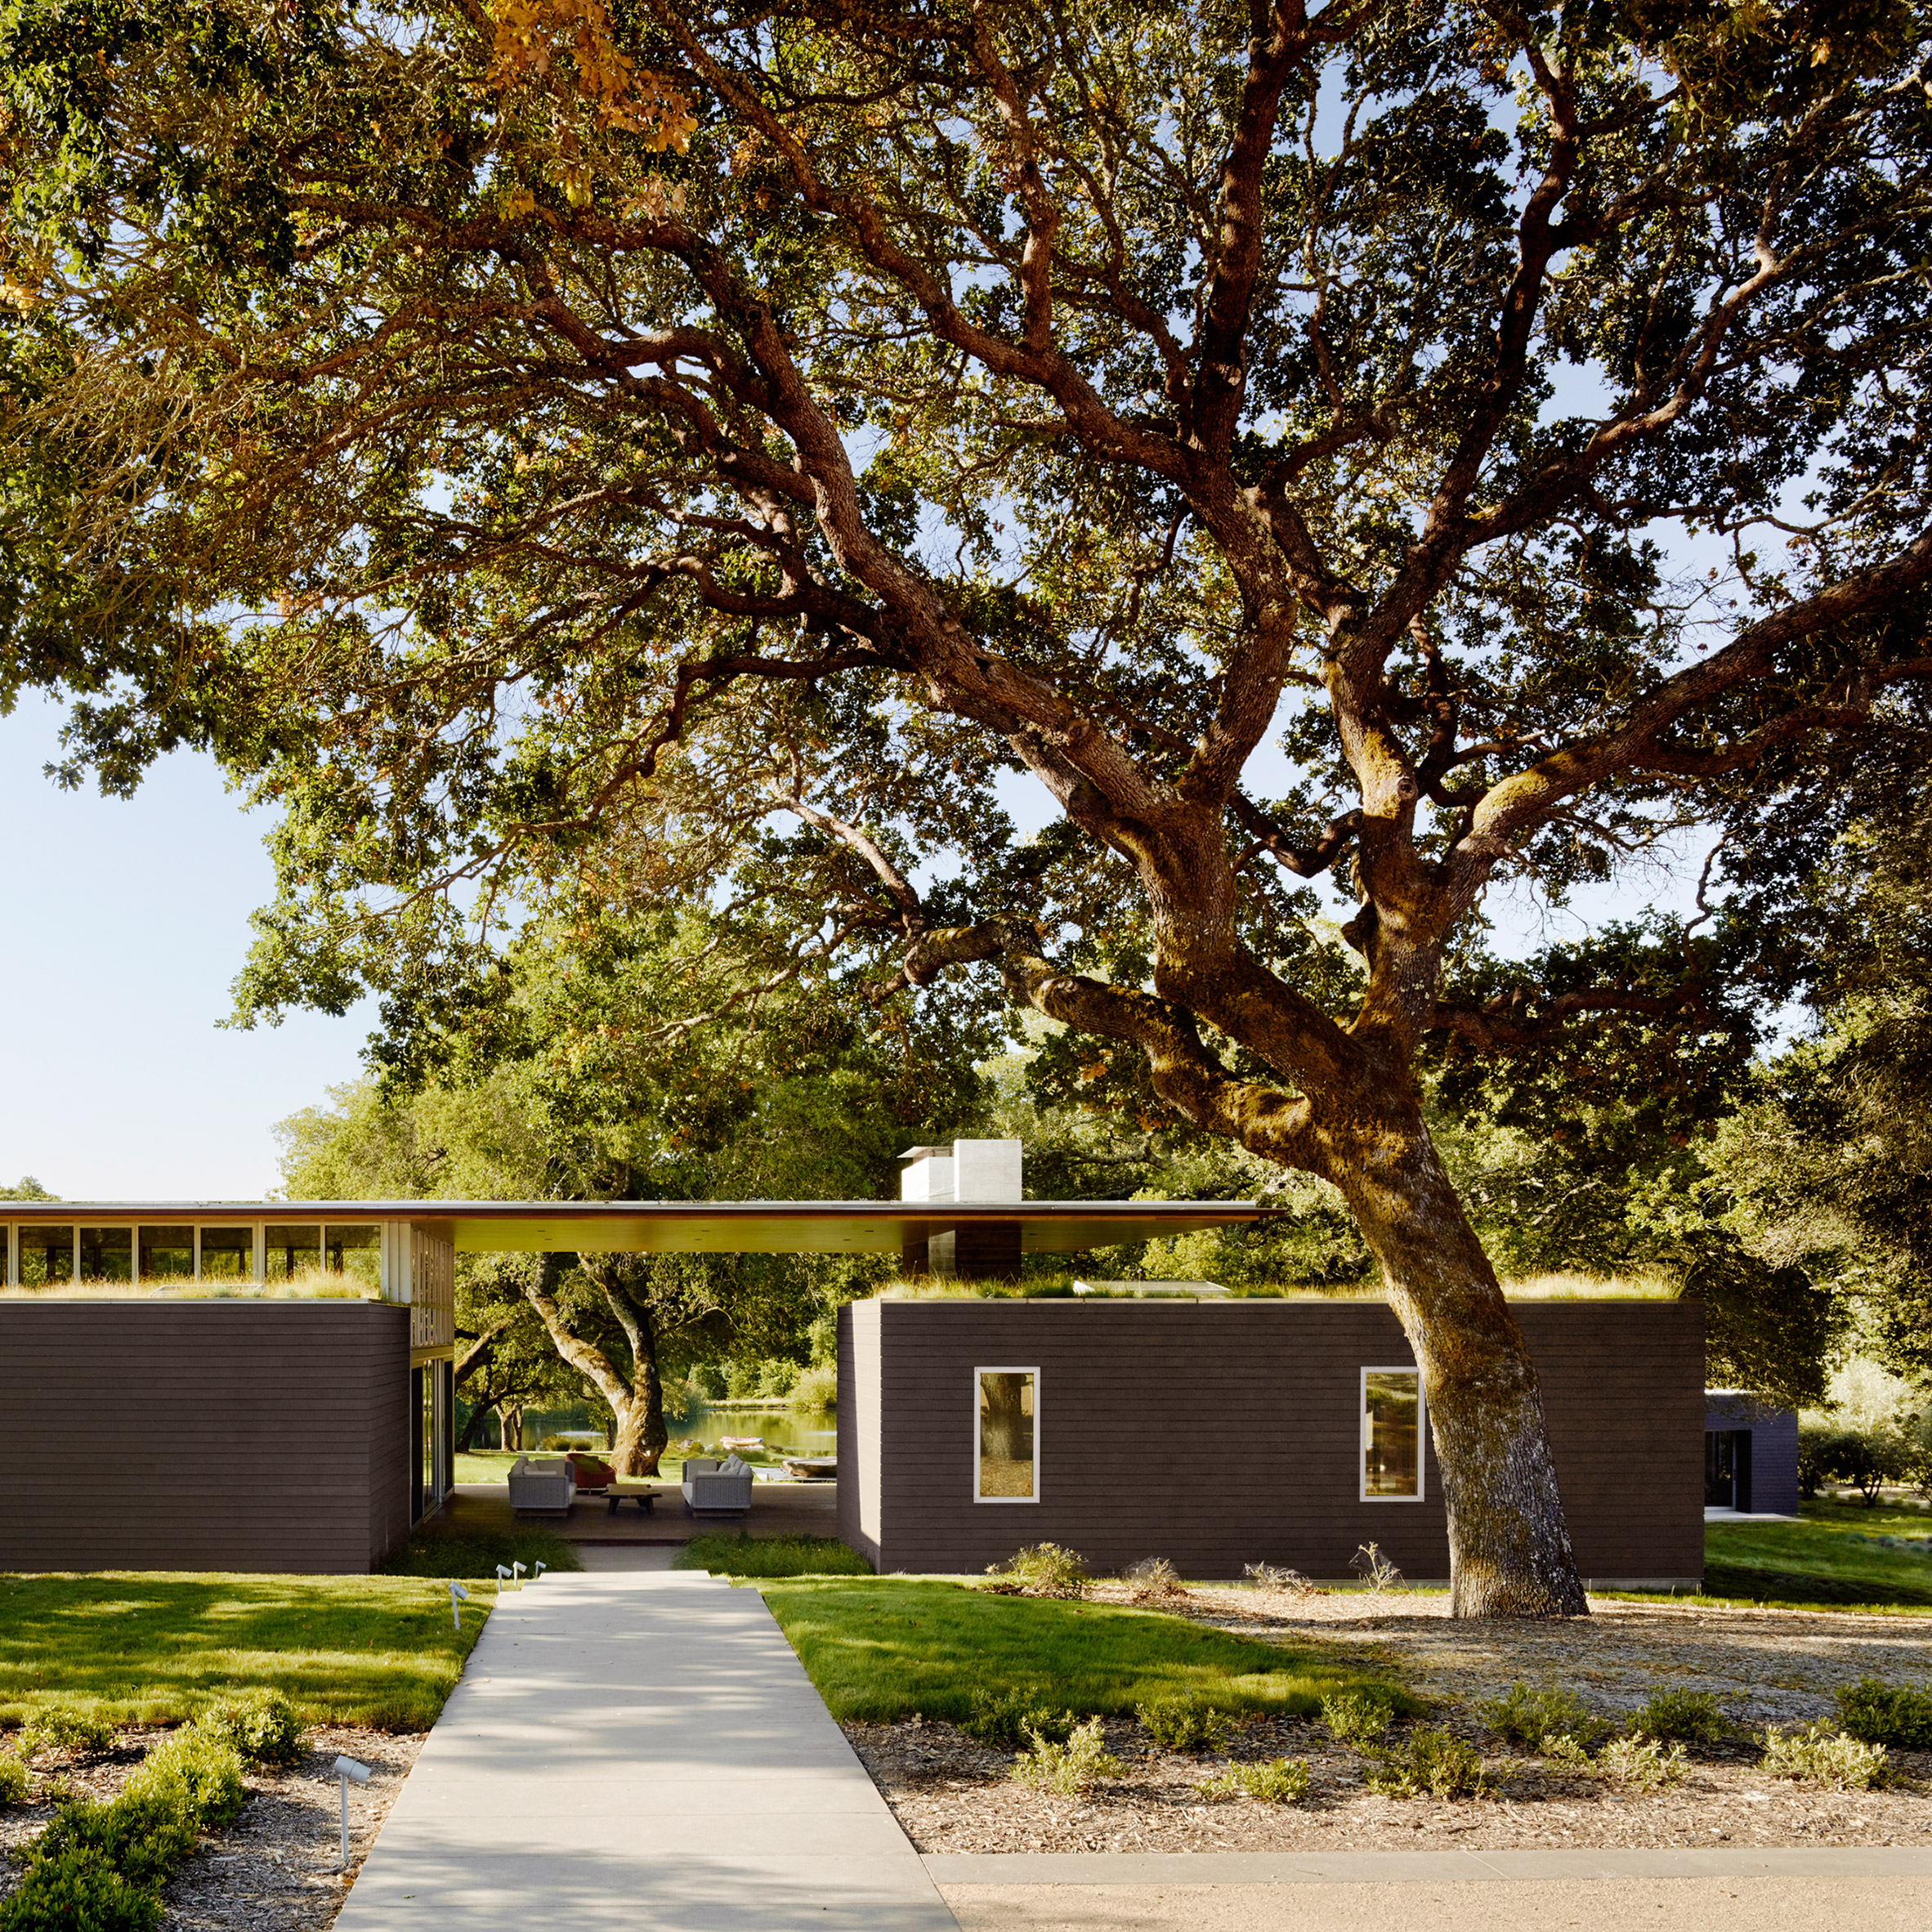 Sonoma Residence by Turnbull Griffin Haesloop Architects, photograph by Matthew Millman